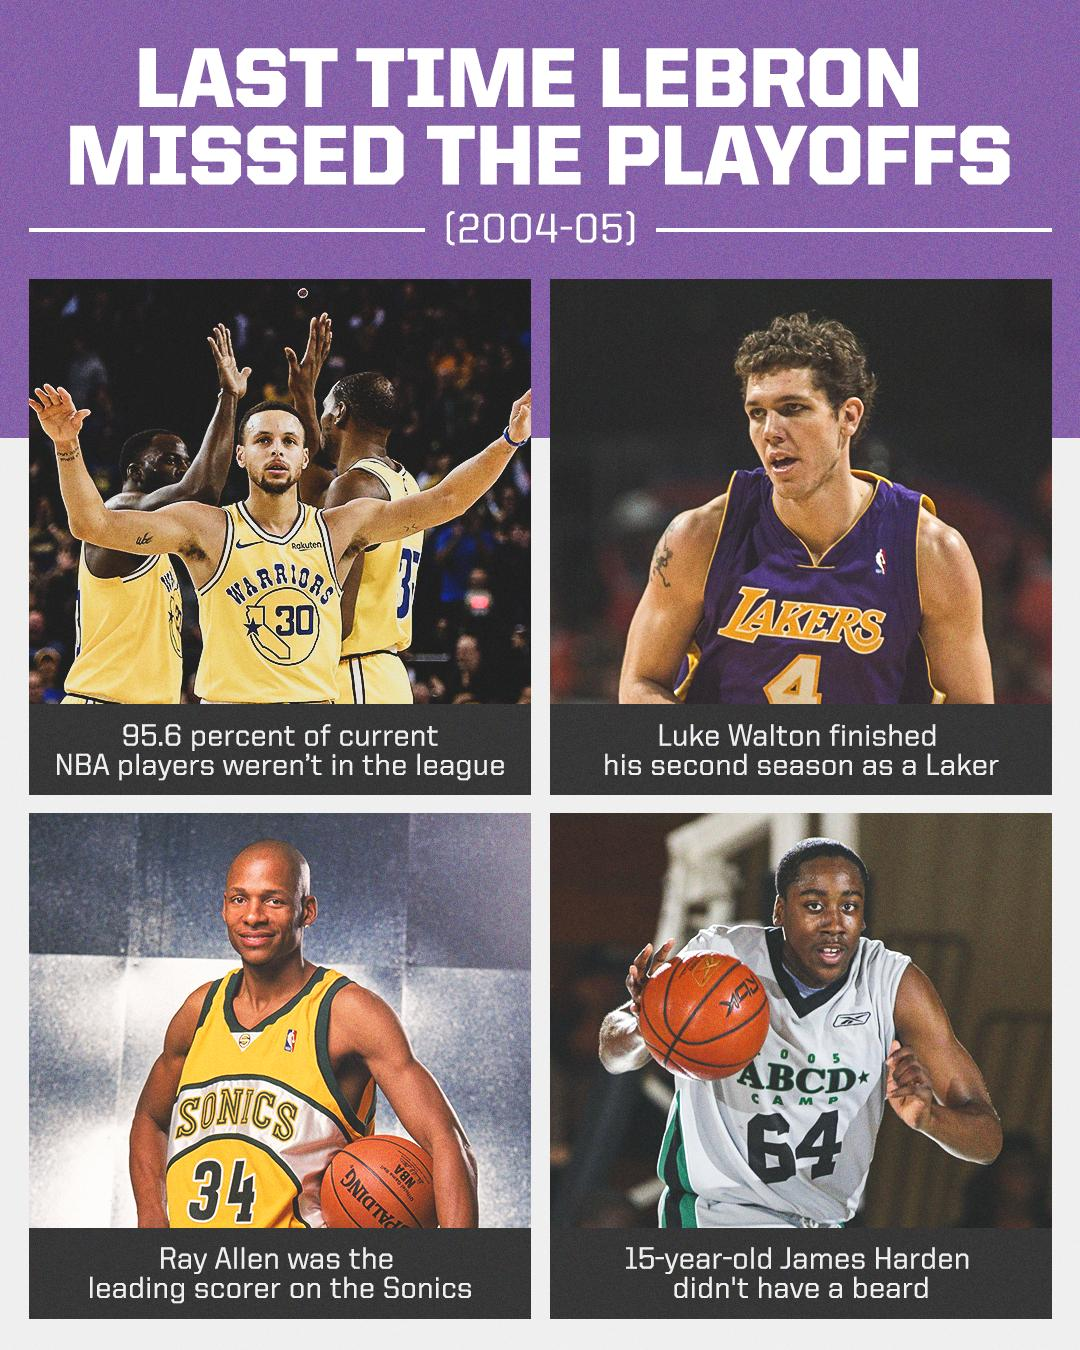 Its been a while ... since LeBron missed the playoffs �� https://t.co/5s8xJqzmZi